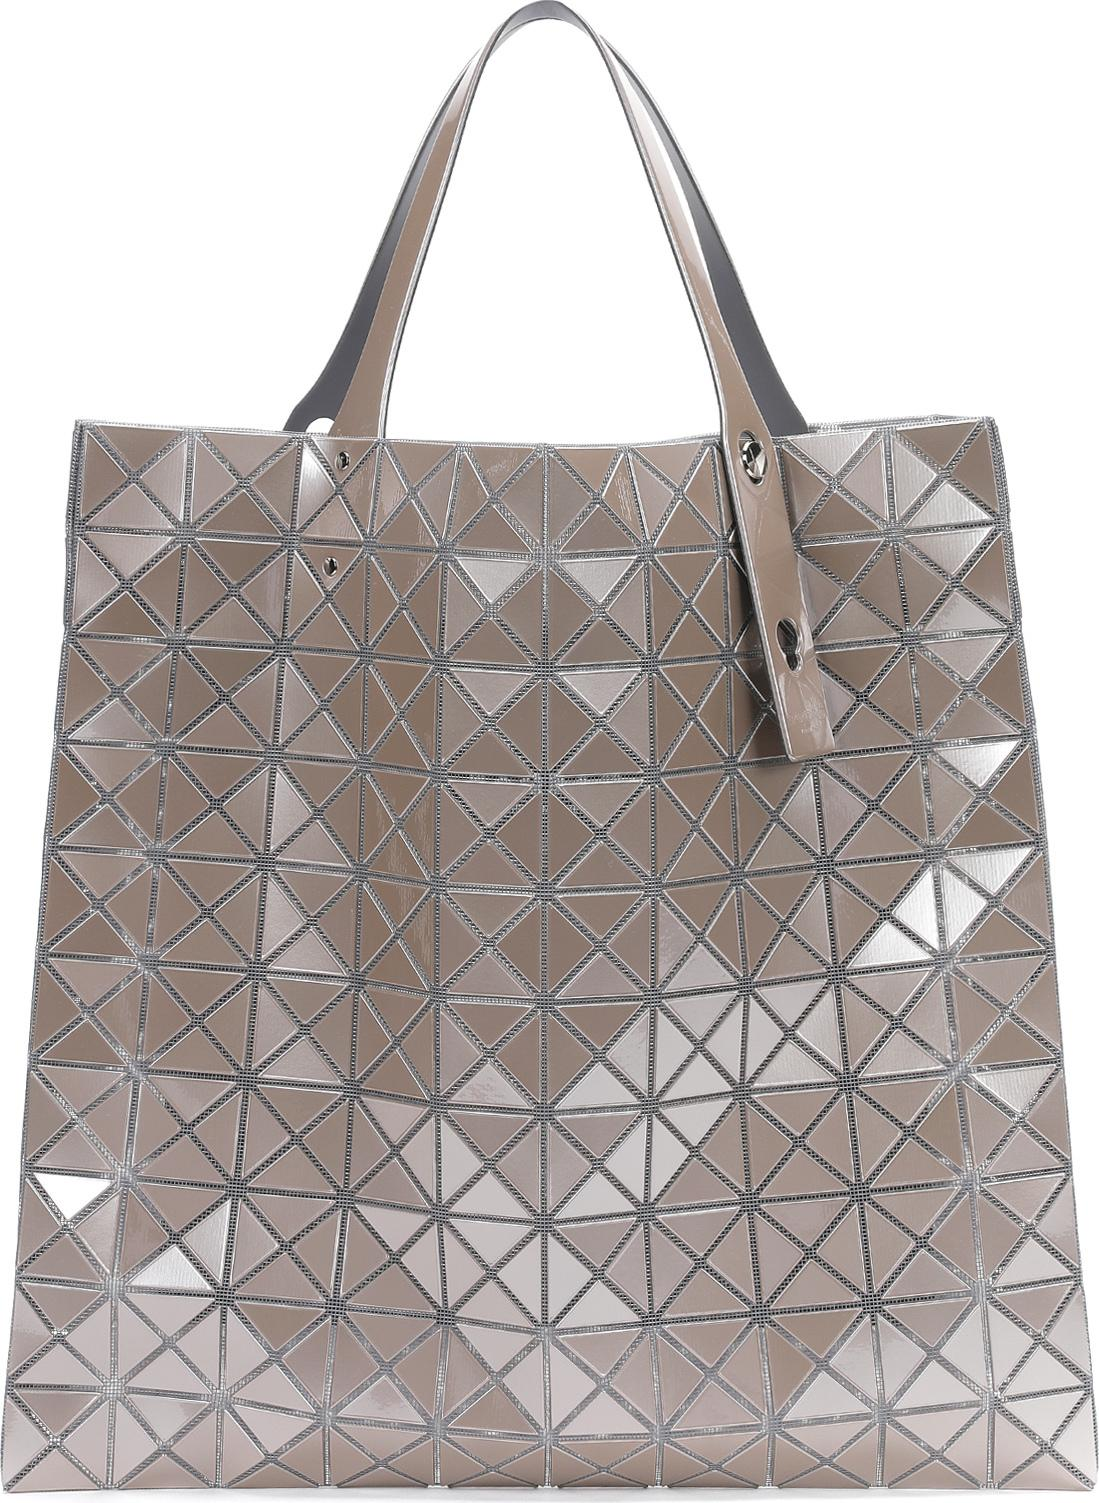 d9f1e9d22c81d Lyst Bao Bao Issey Miyake Prism Metallic Tote in Natural